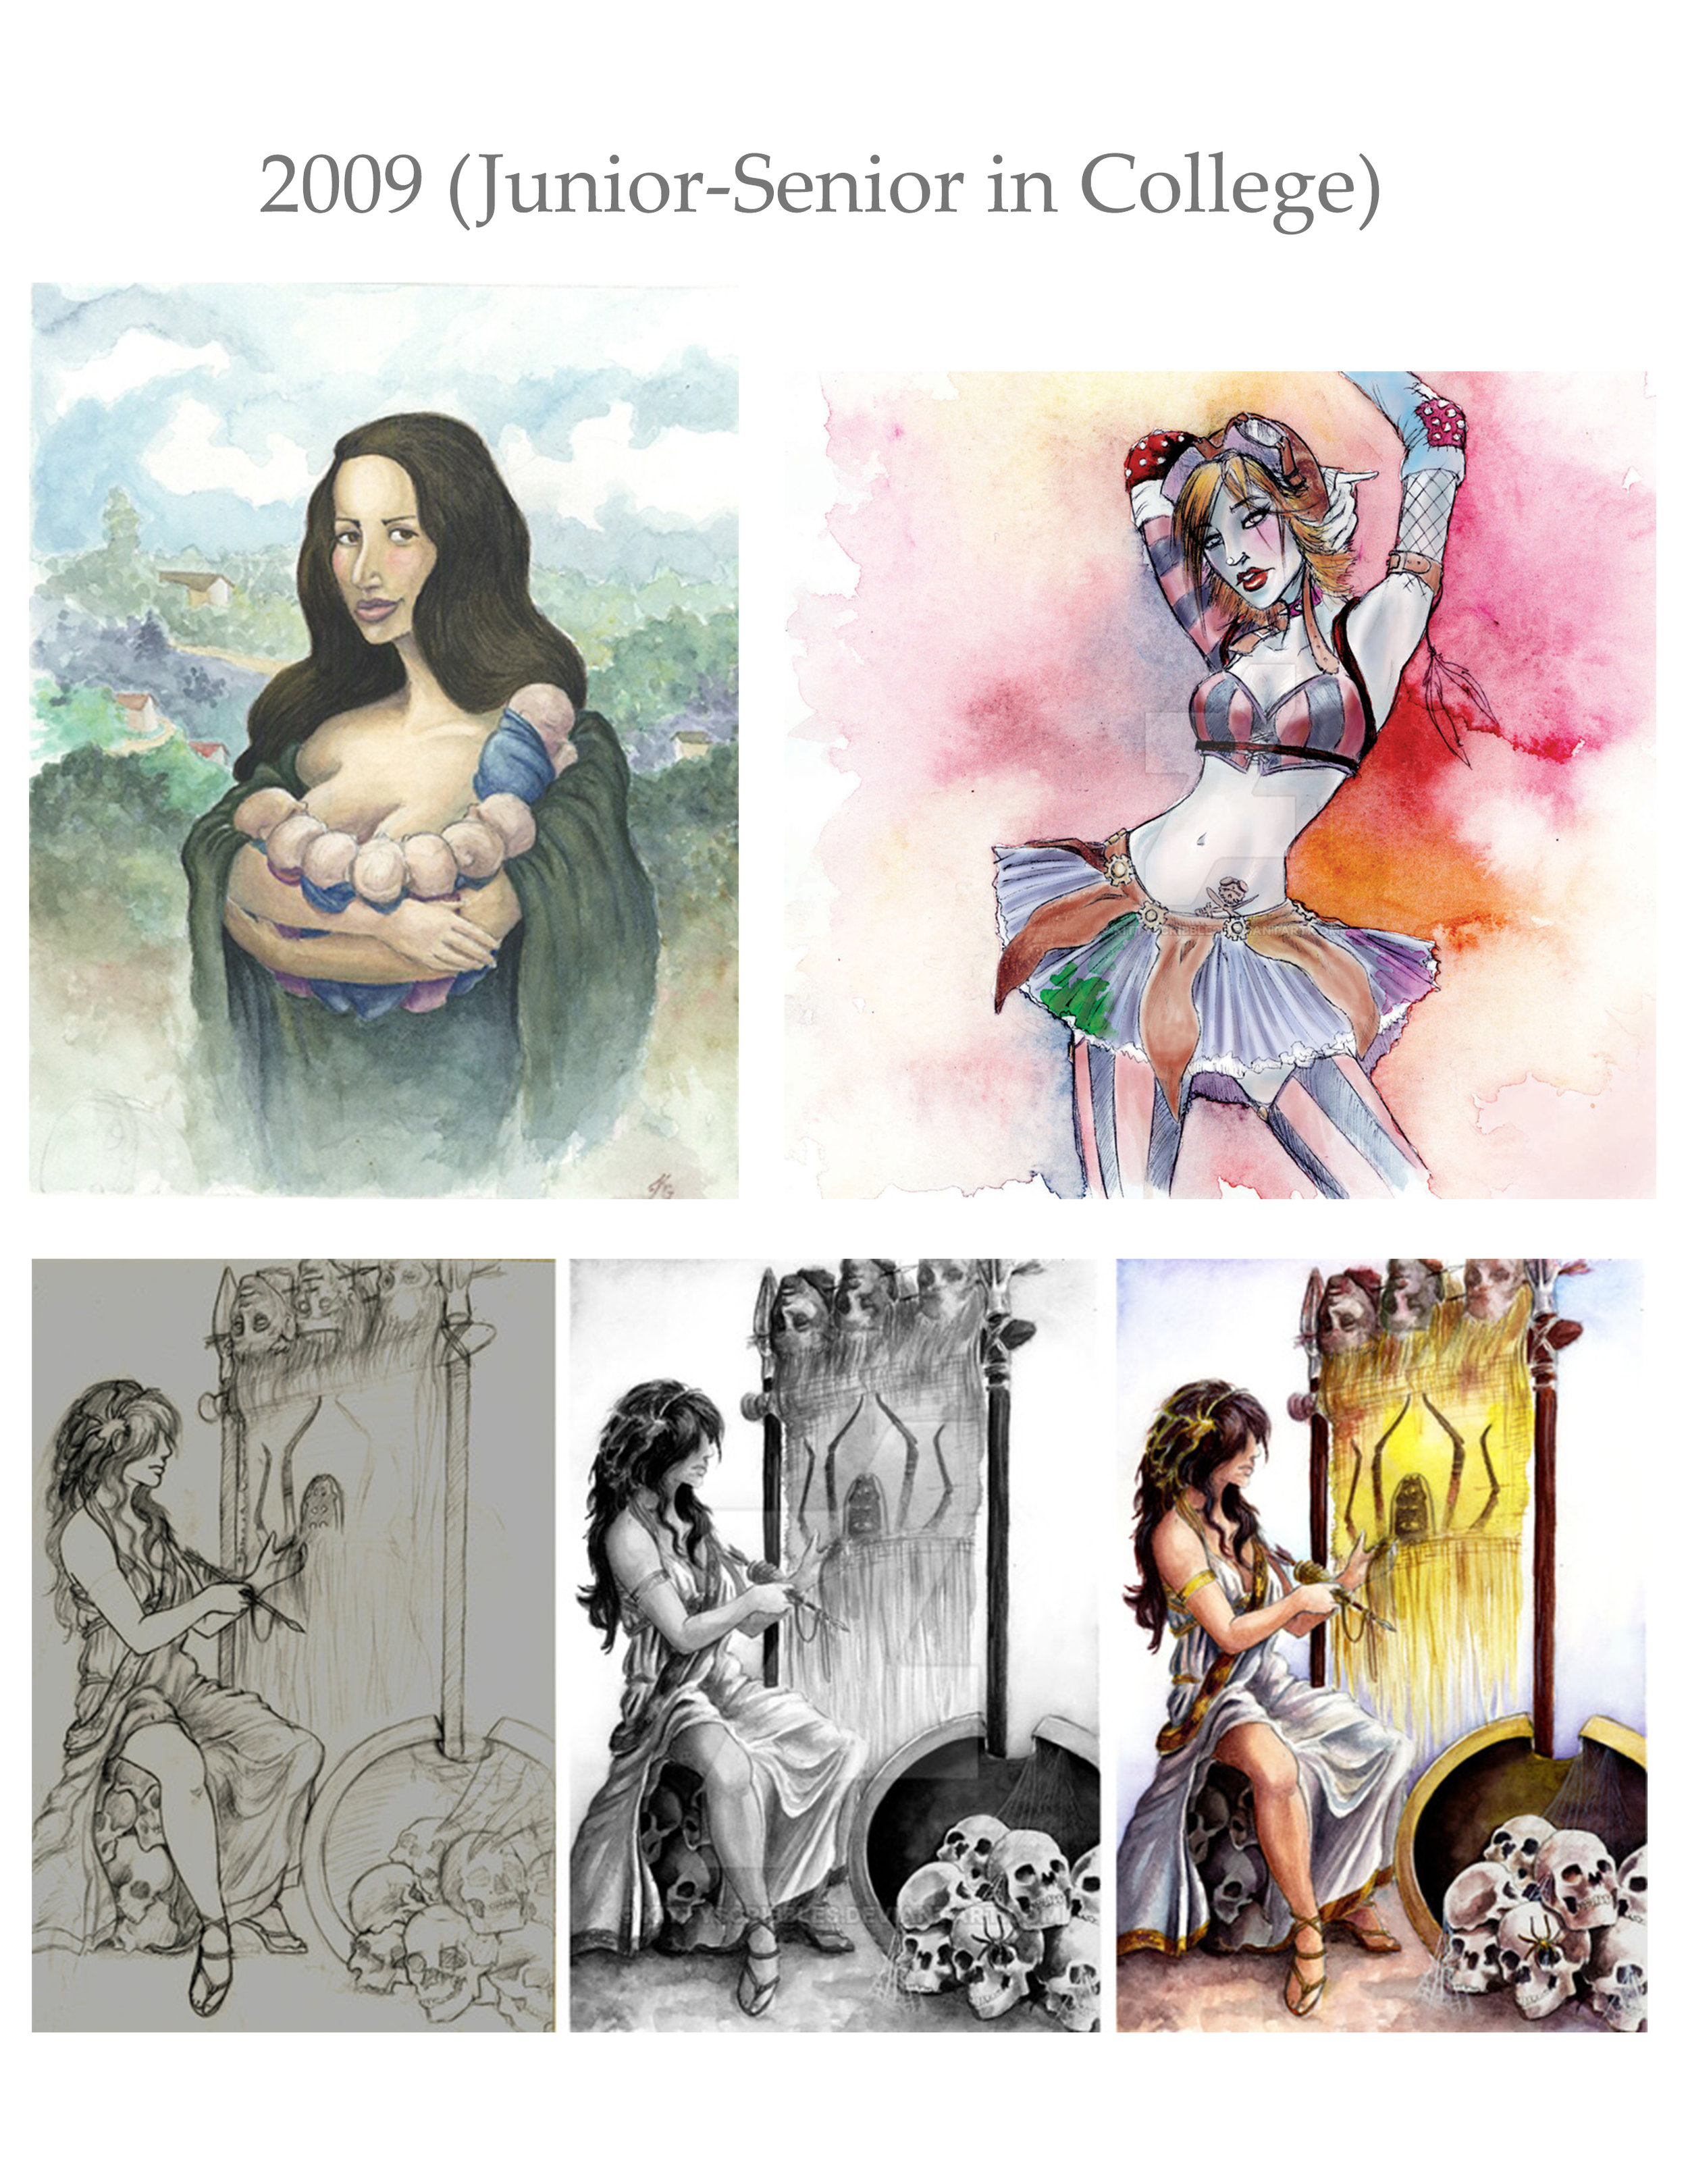 Top left: Octomom editorial piece in watercolors. Top right: mixed media CD cover assignment. Bottom: process portfolio of Arachne, done in watercolors.